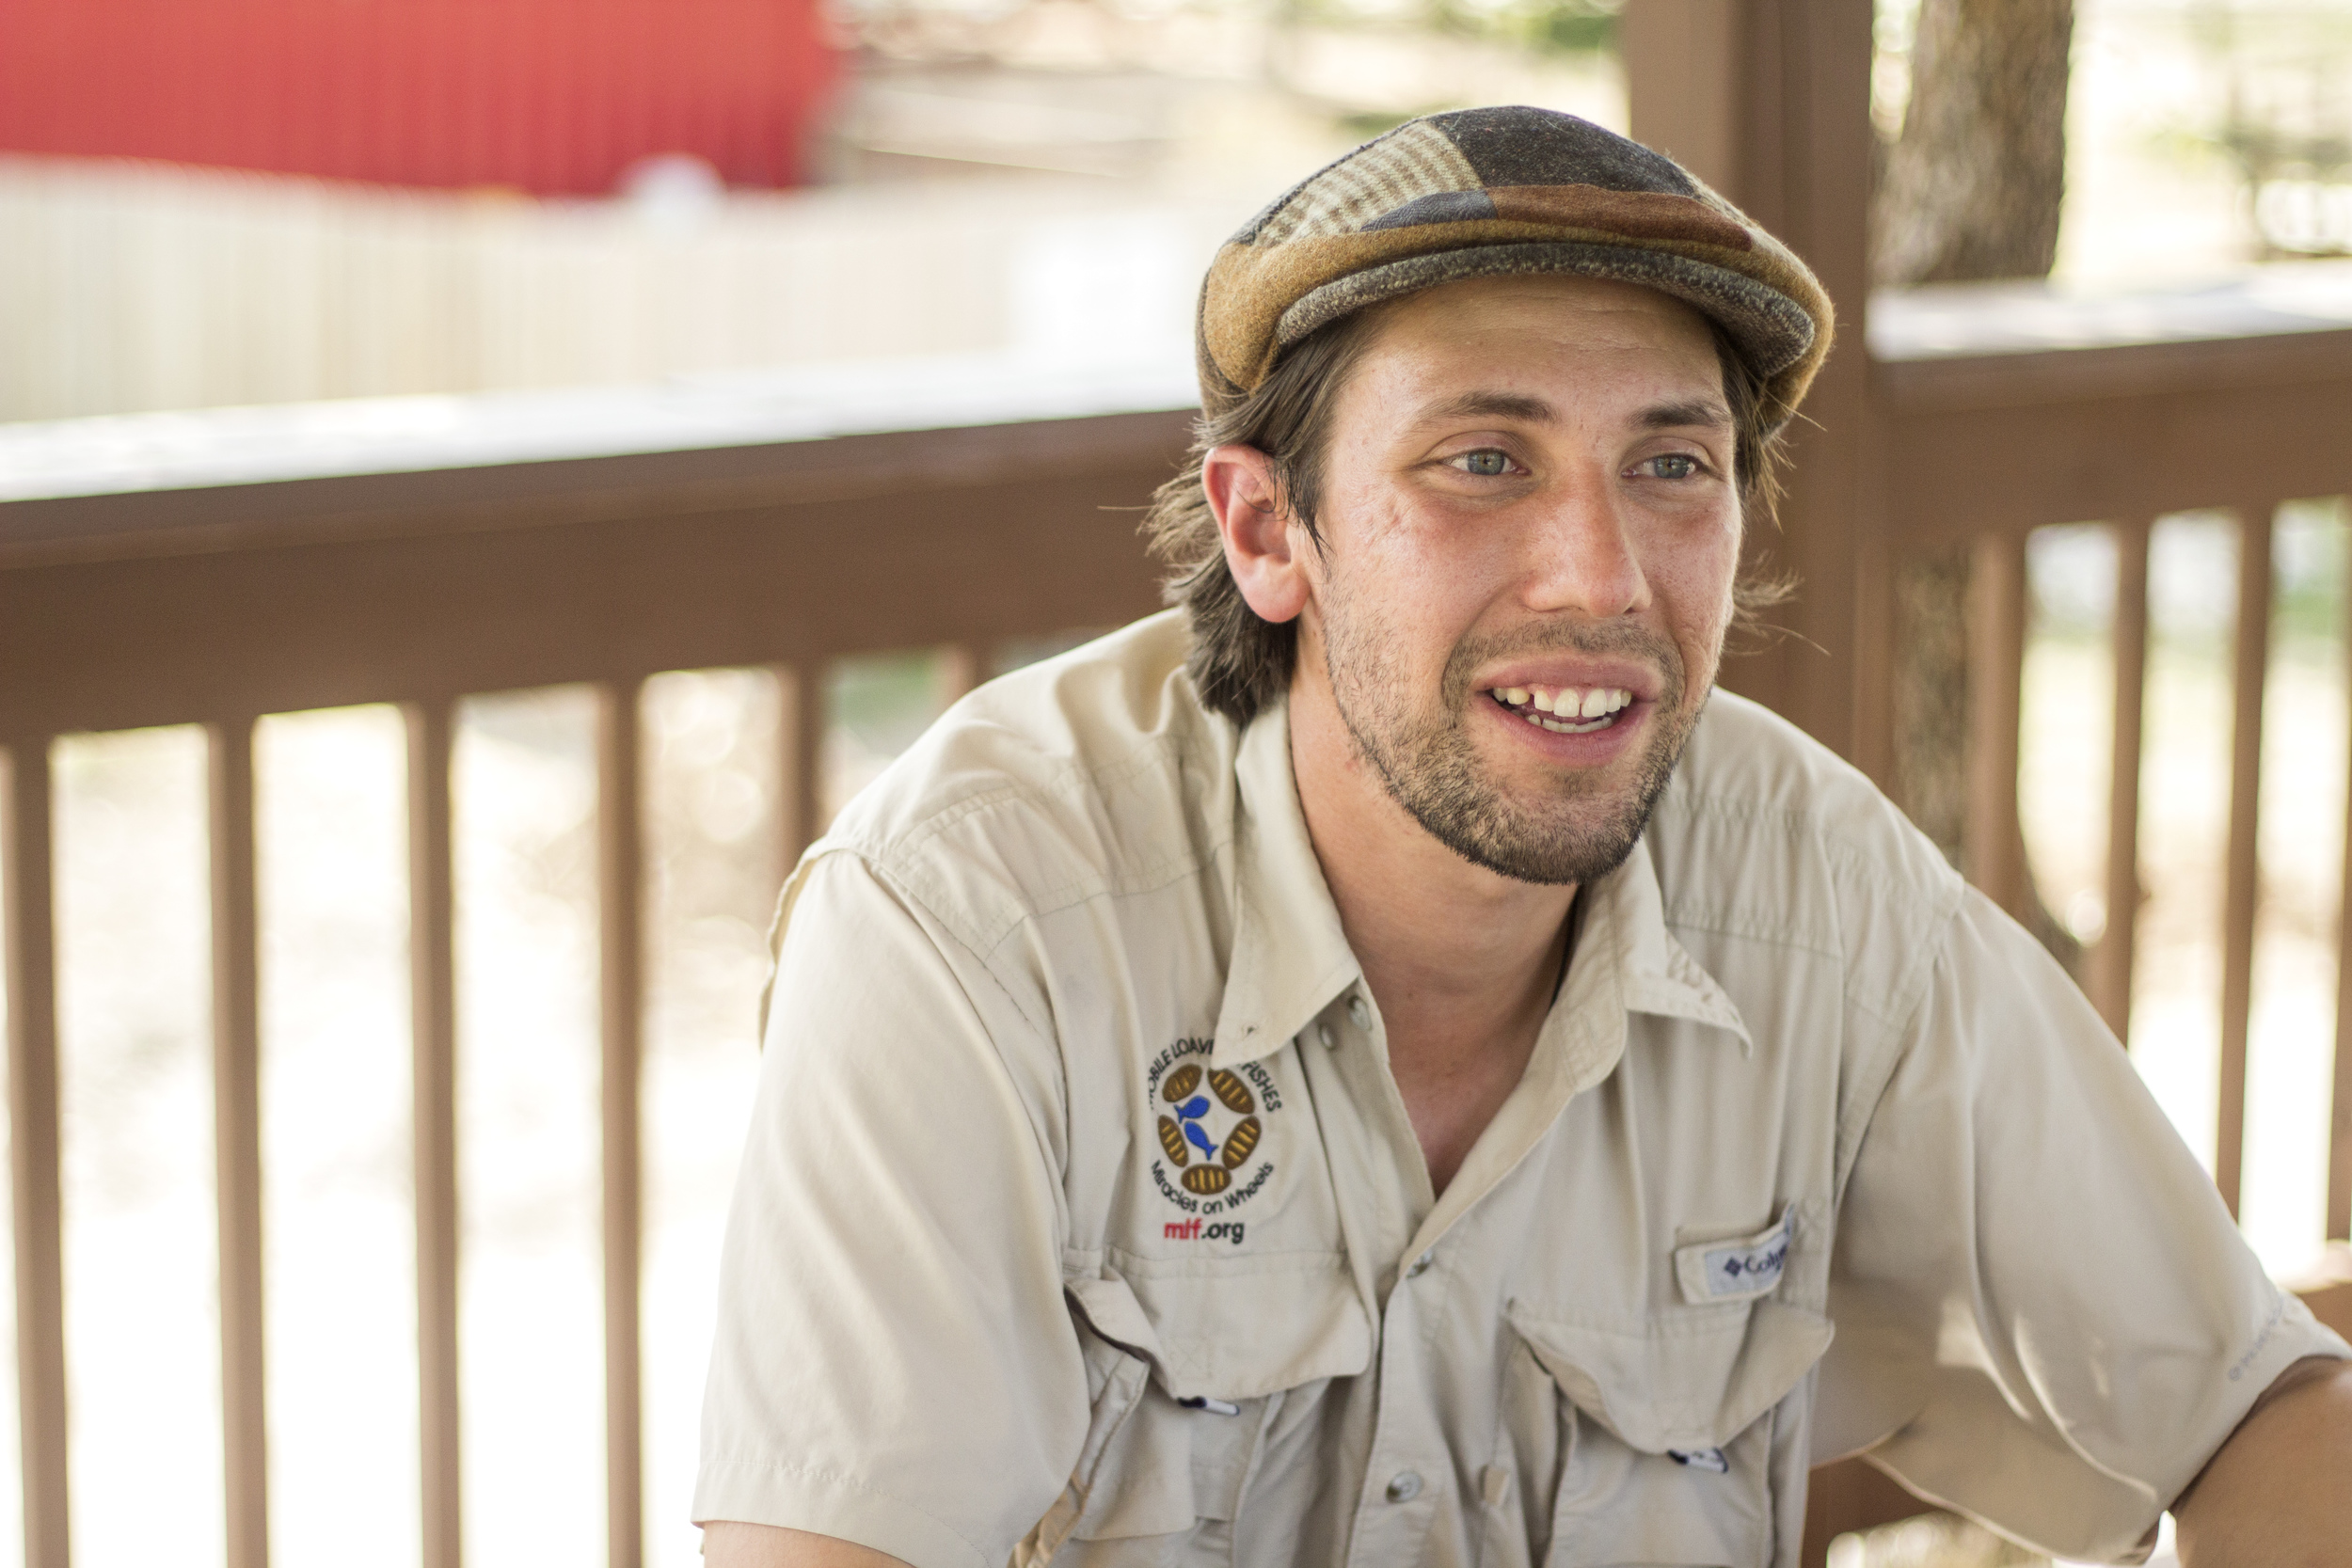 Matthew (Assistant Property Manager at Community First! Village) |Austin | July 7